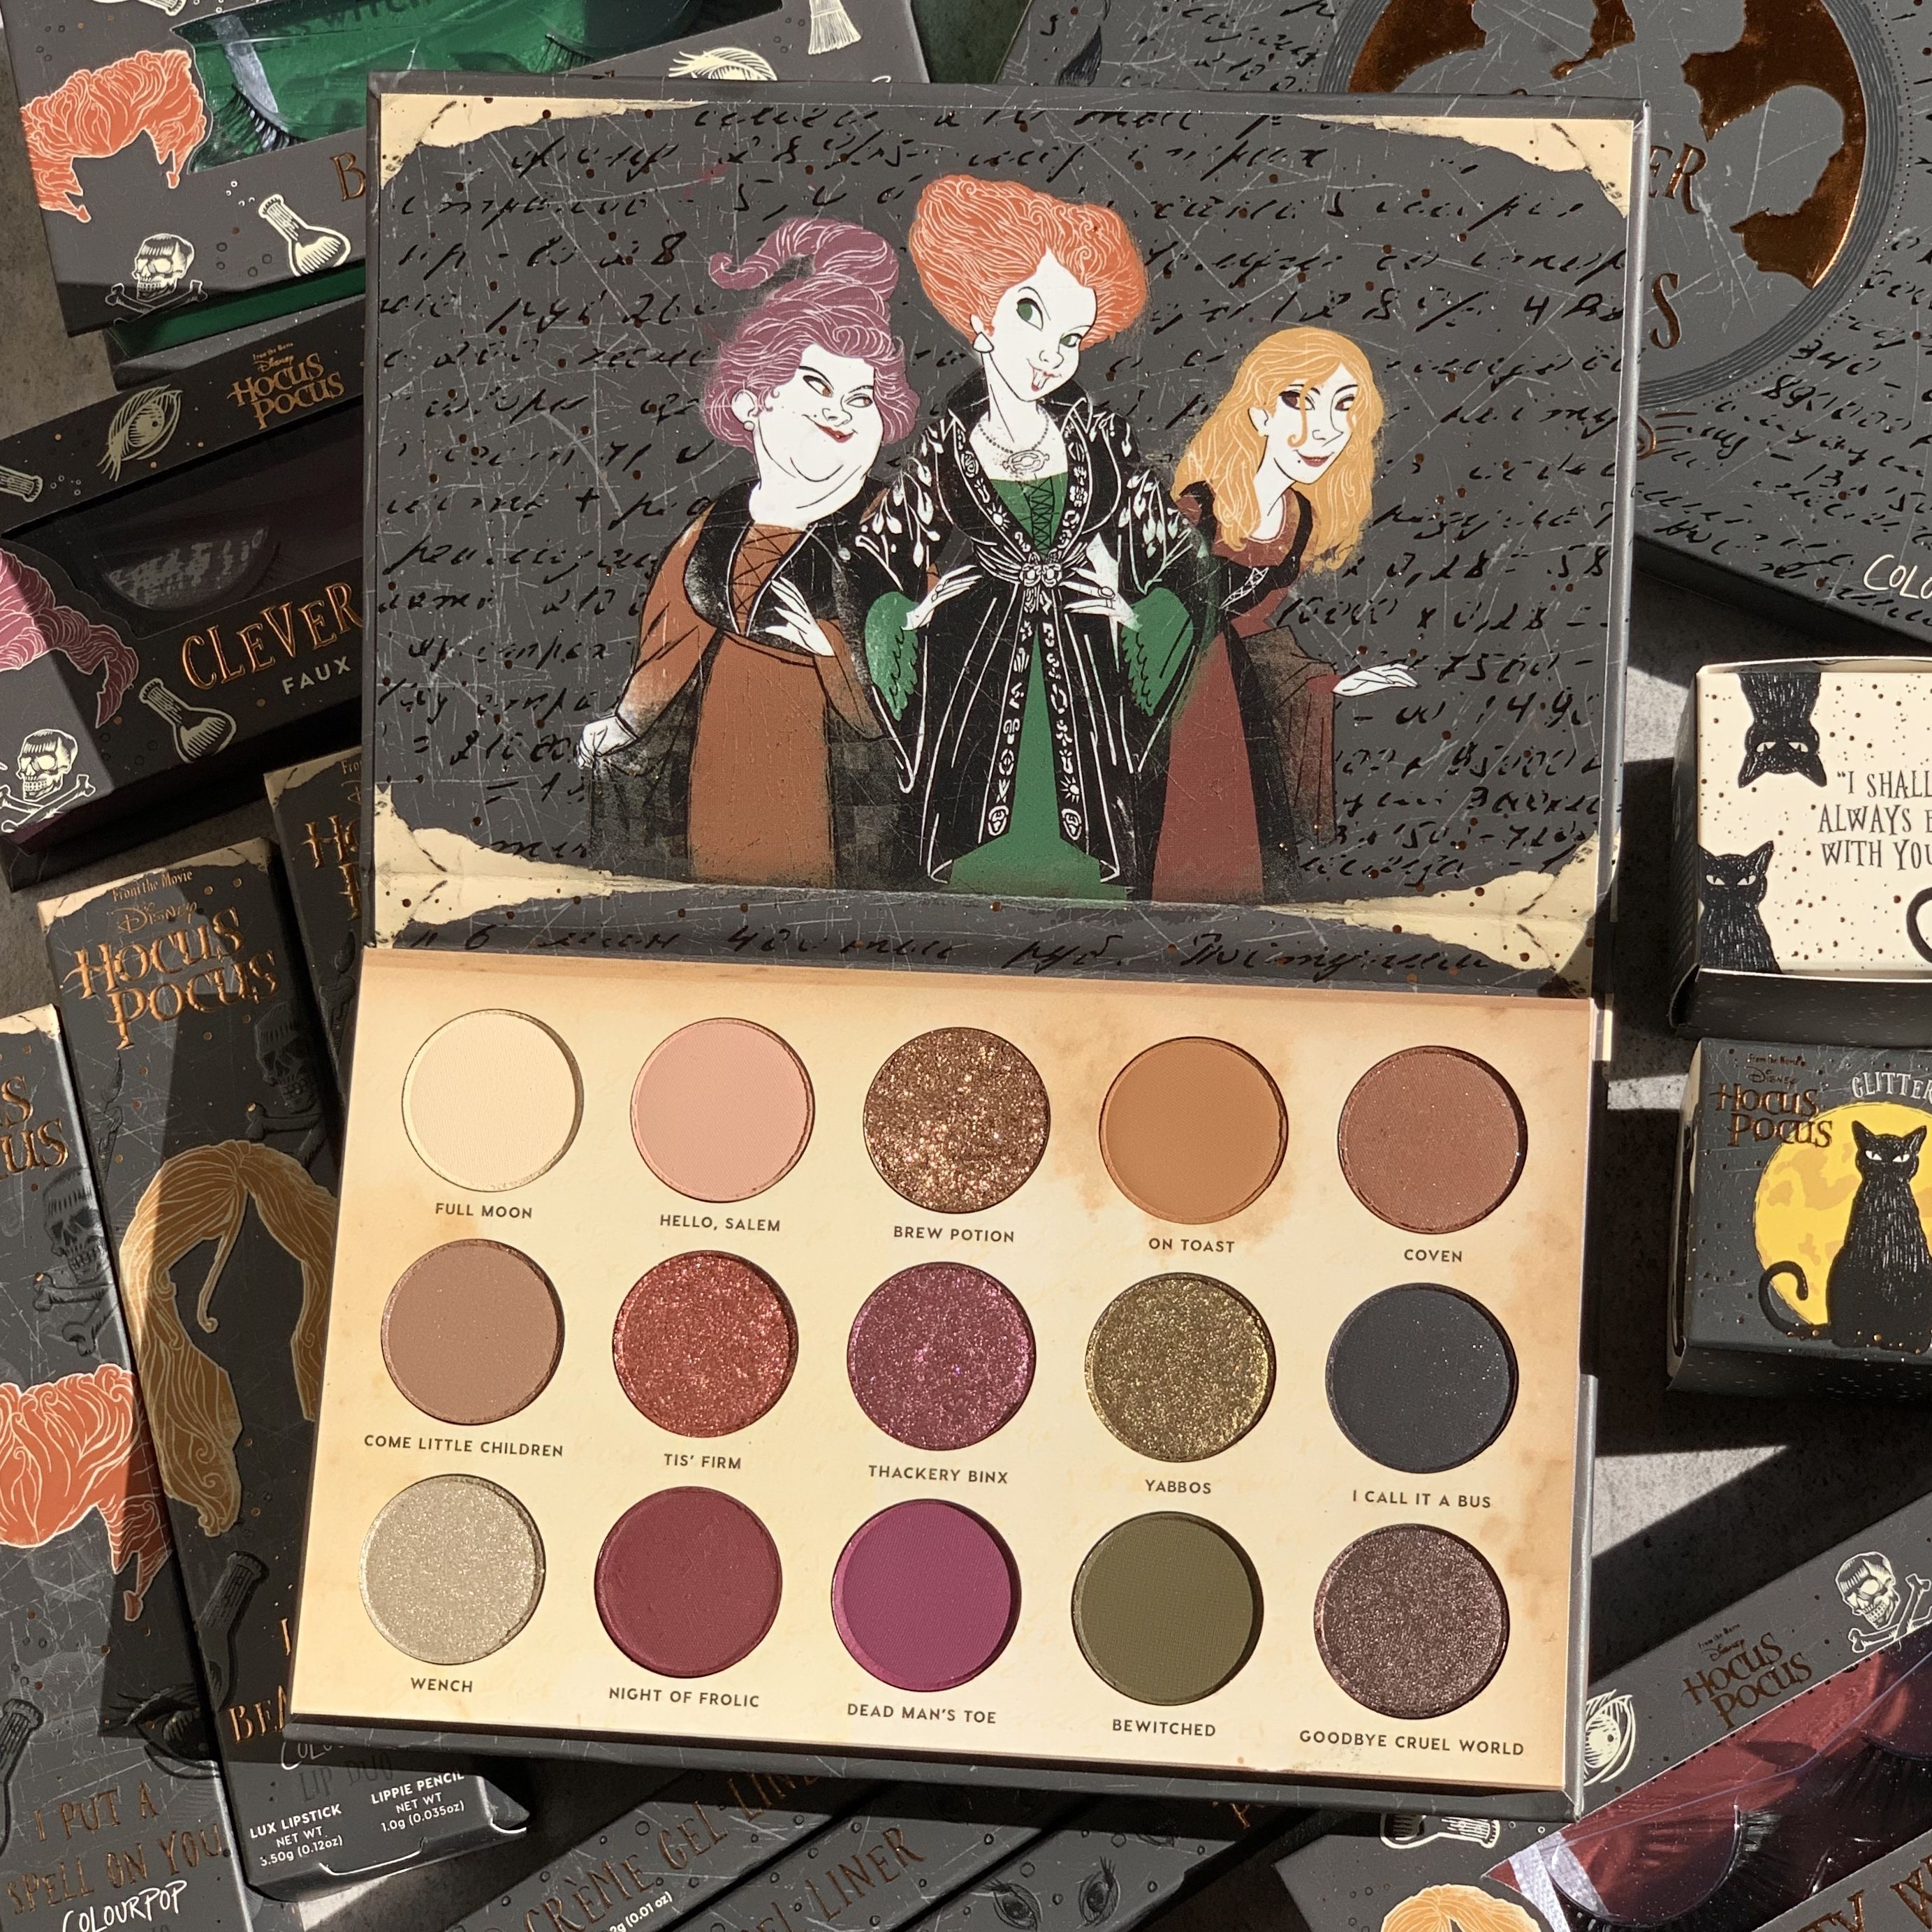 A close up look at the Gather Round Sisters palette 🎃 in